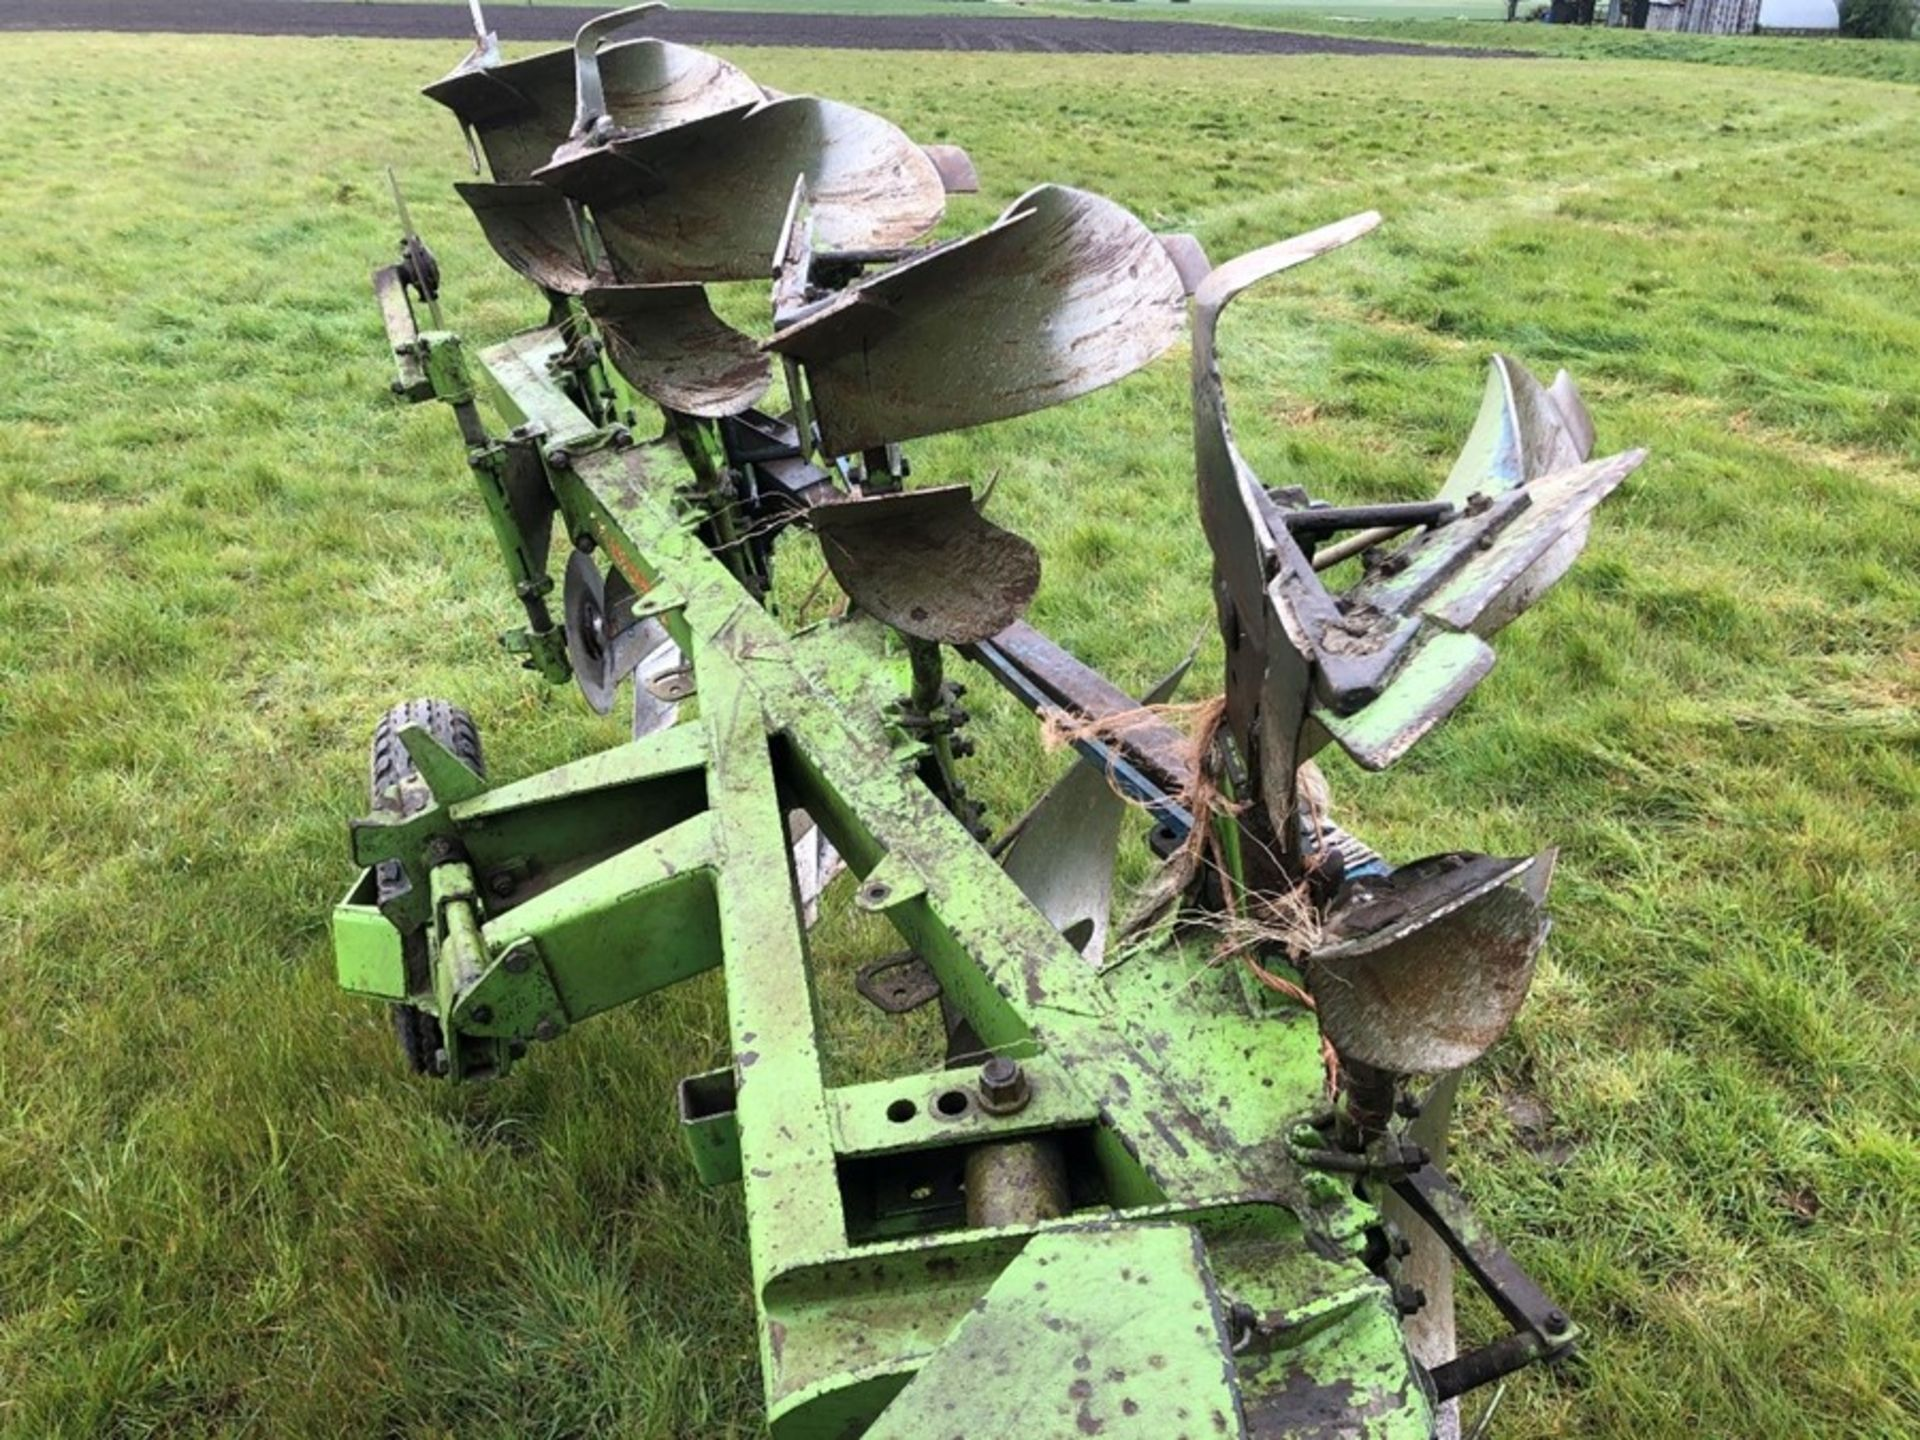 Dowdeswell DP7C 4F reversible plough, 3+1 frame, serial no: 514341496, manual in office - Image 2 of 3